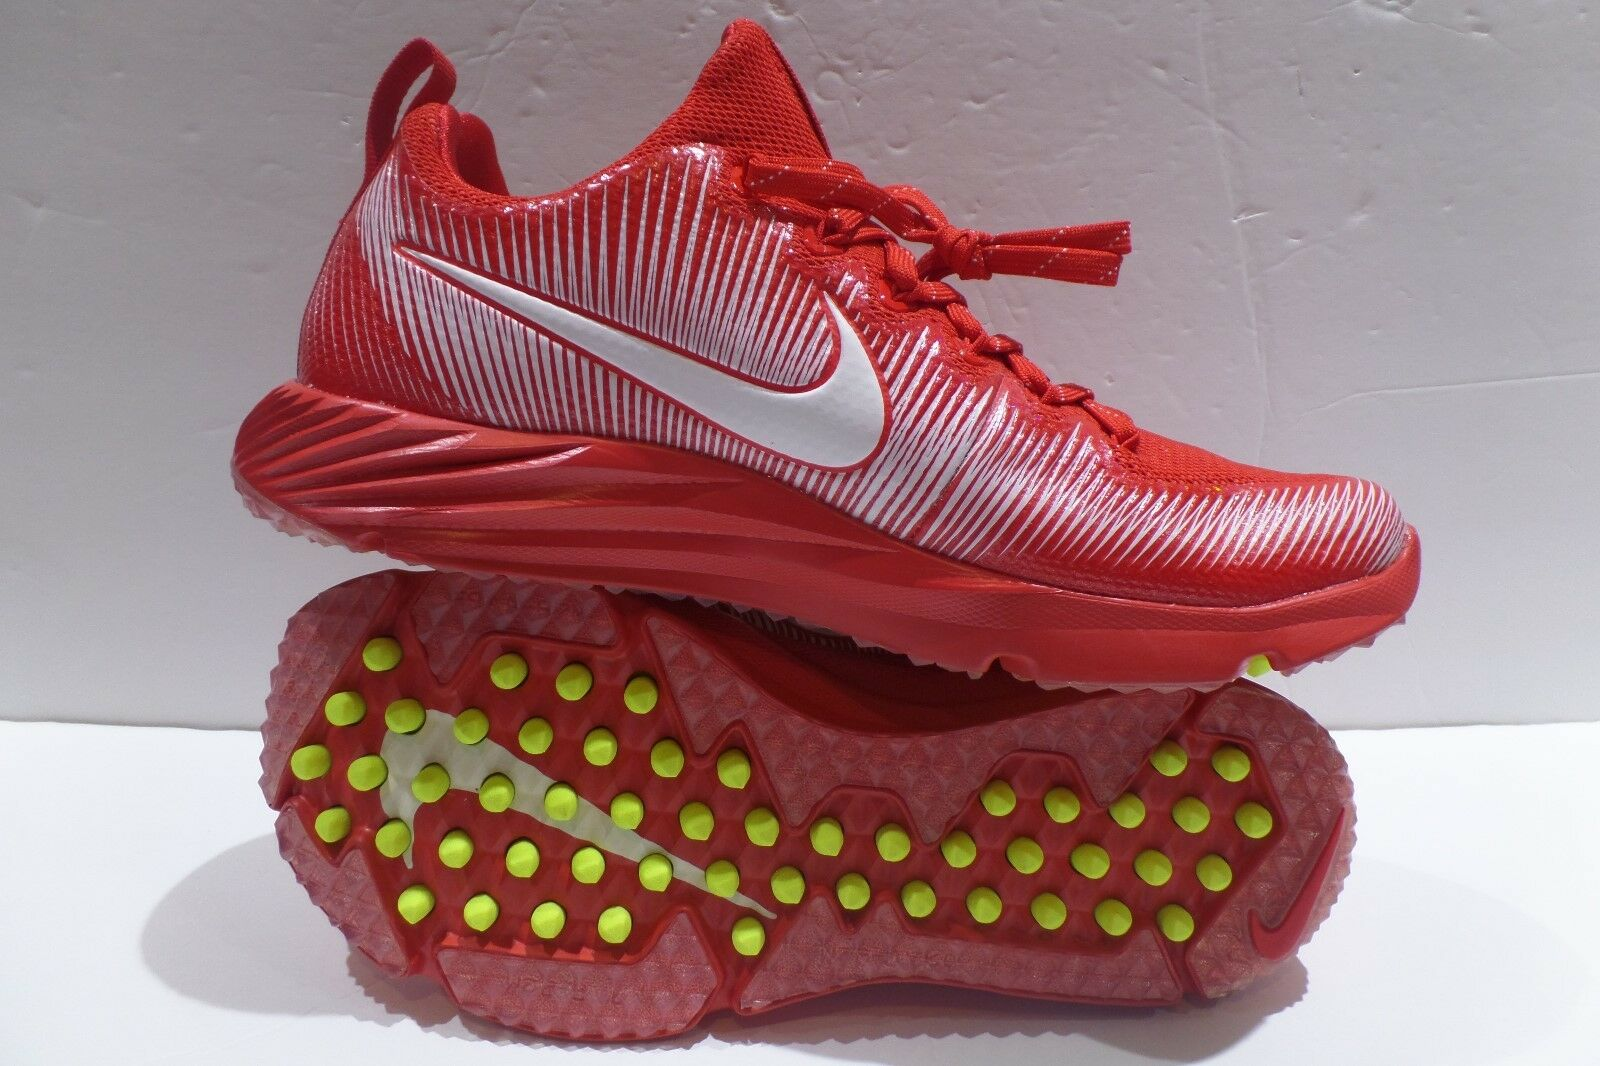 Nike Vapor Speed Turf Lax Football Trainer Shoes Red White Size 8.5